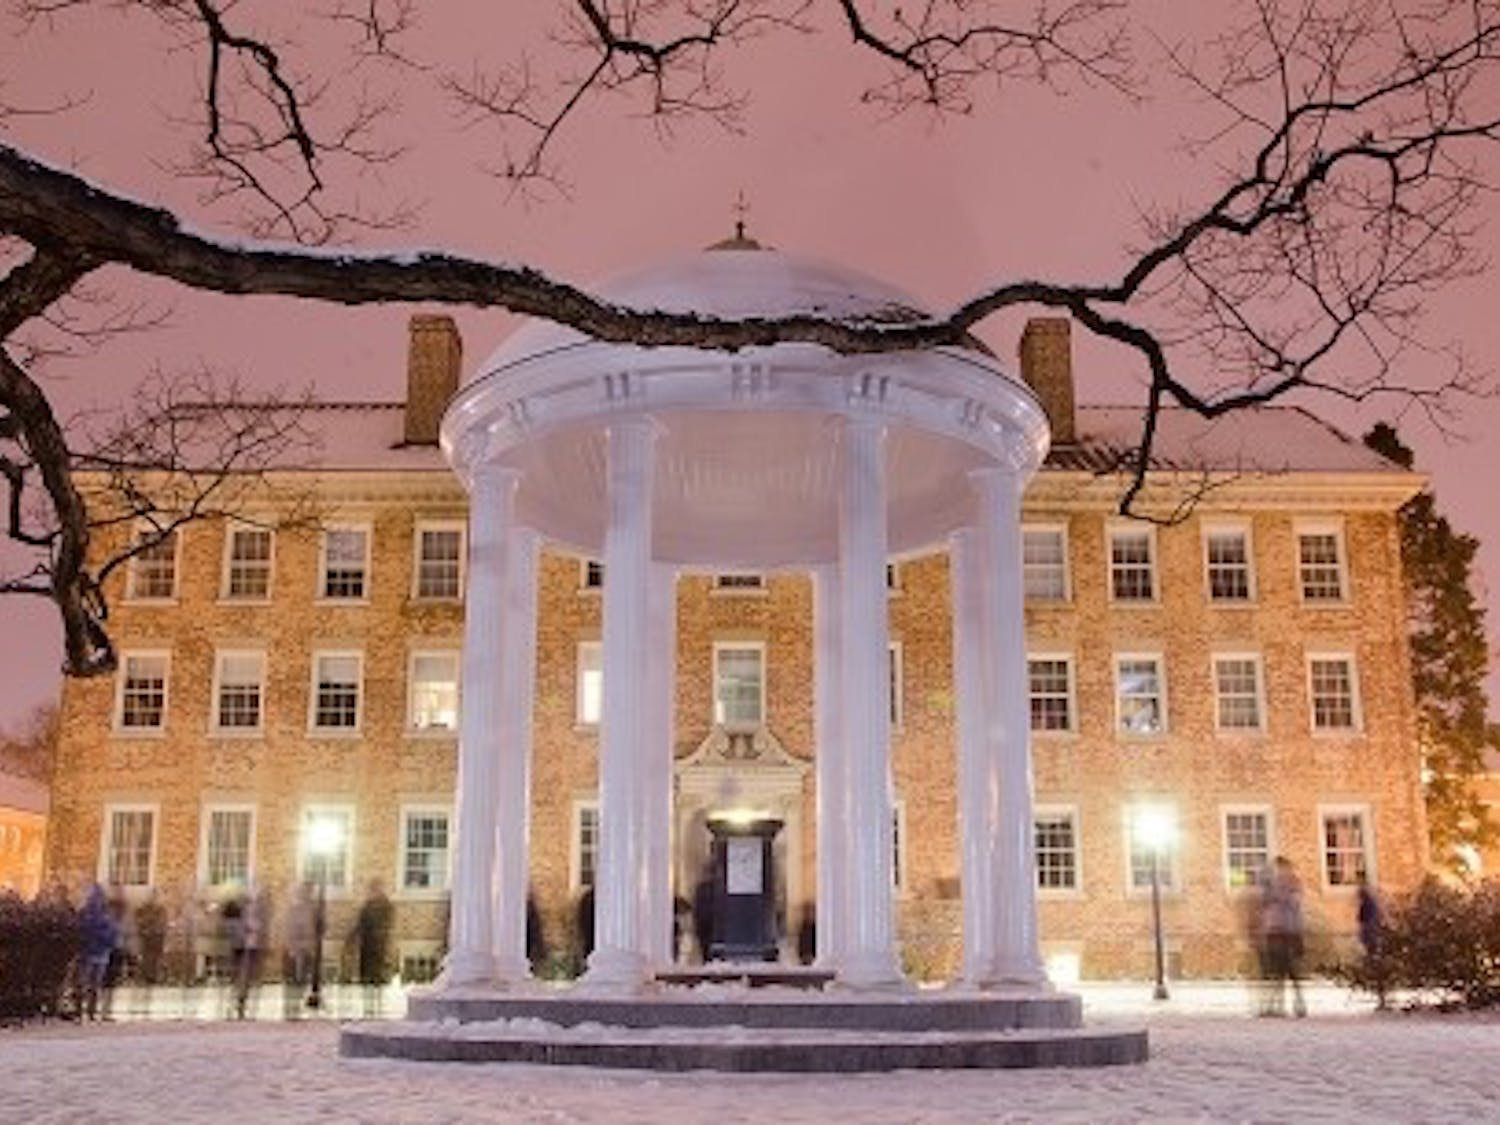 Students gather around the Old Well to enjoy the snow in January 2014.